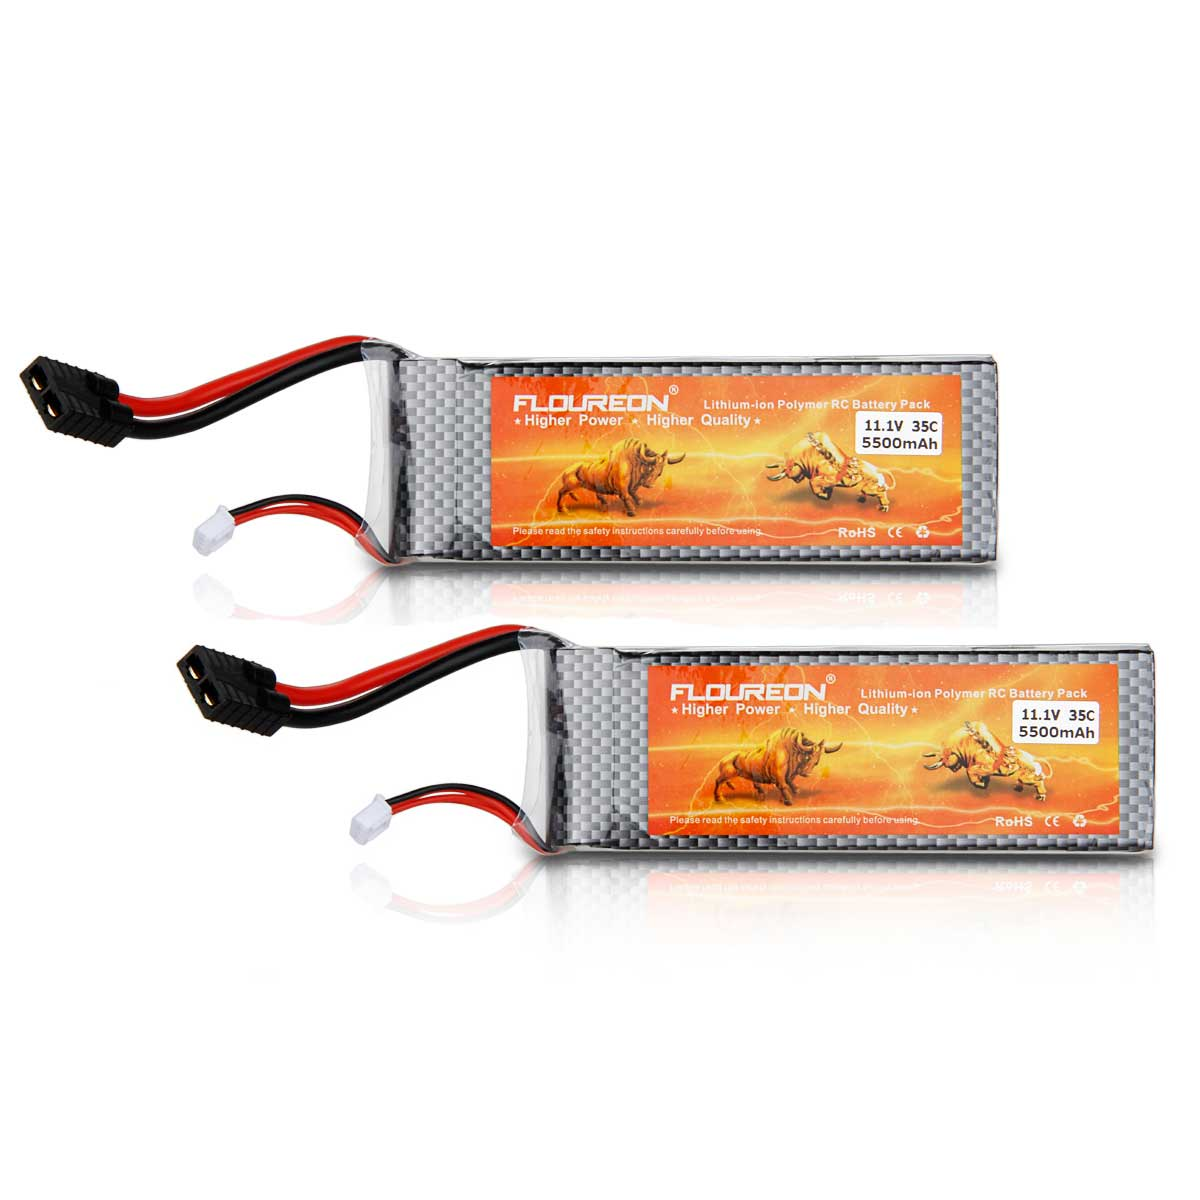 Floureon RC Li-ion Polymer Battery for Quadcopter Airplan...